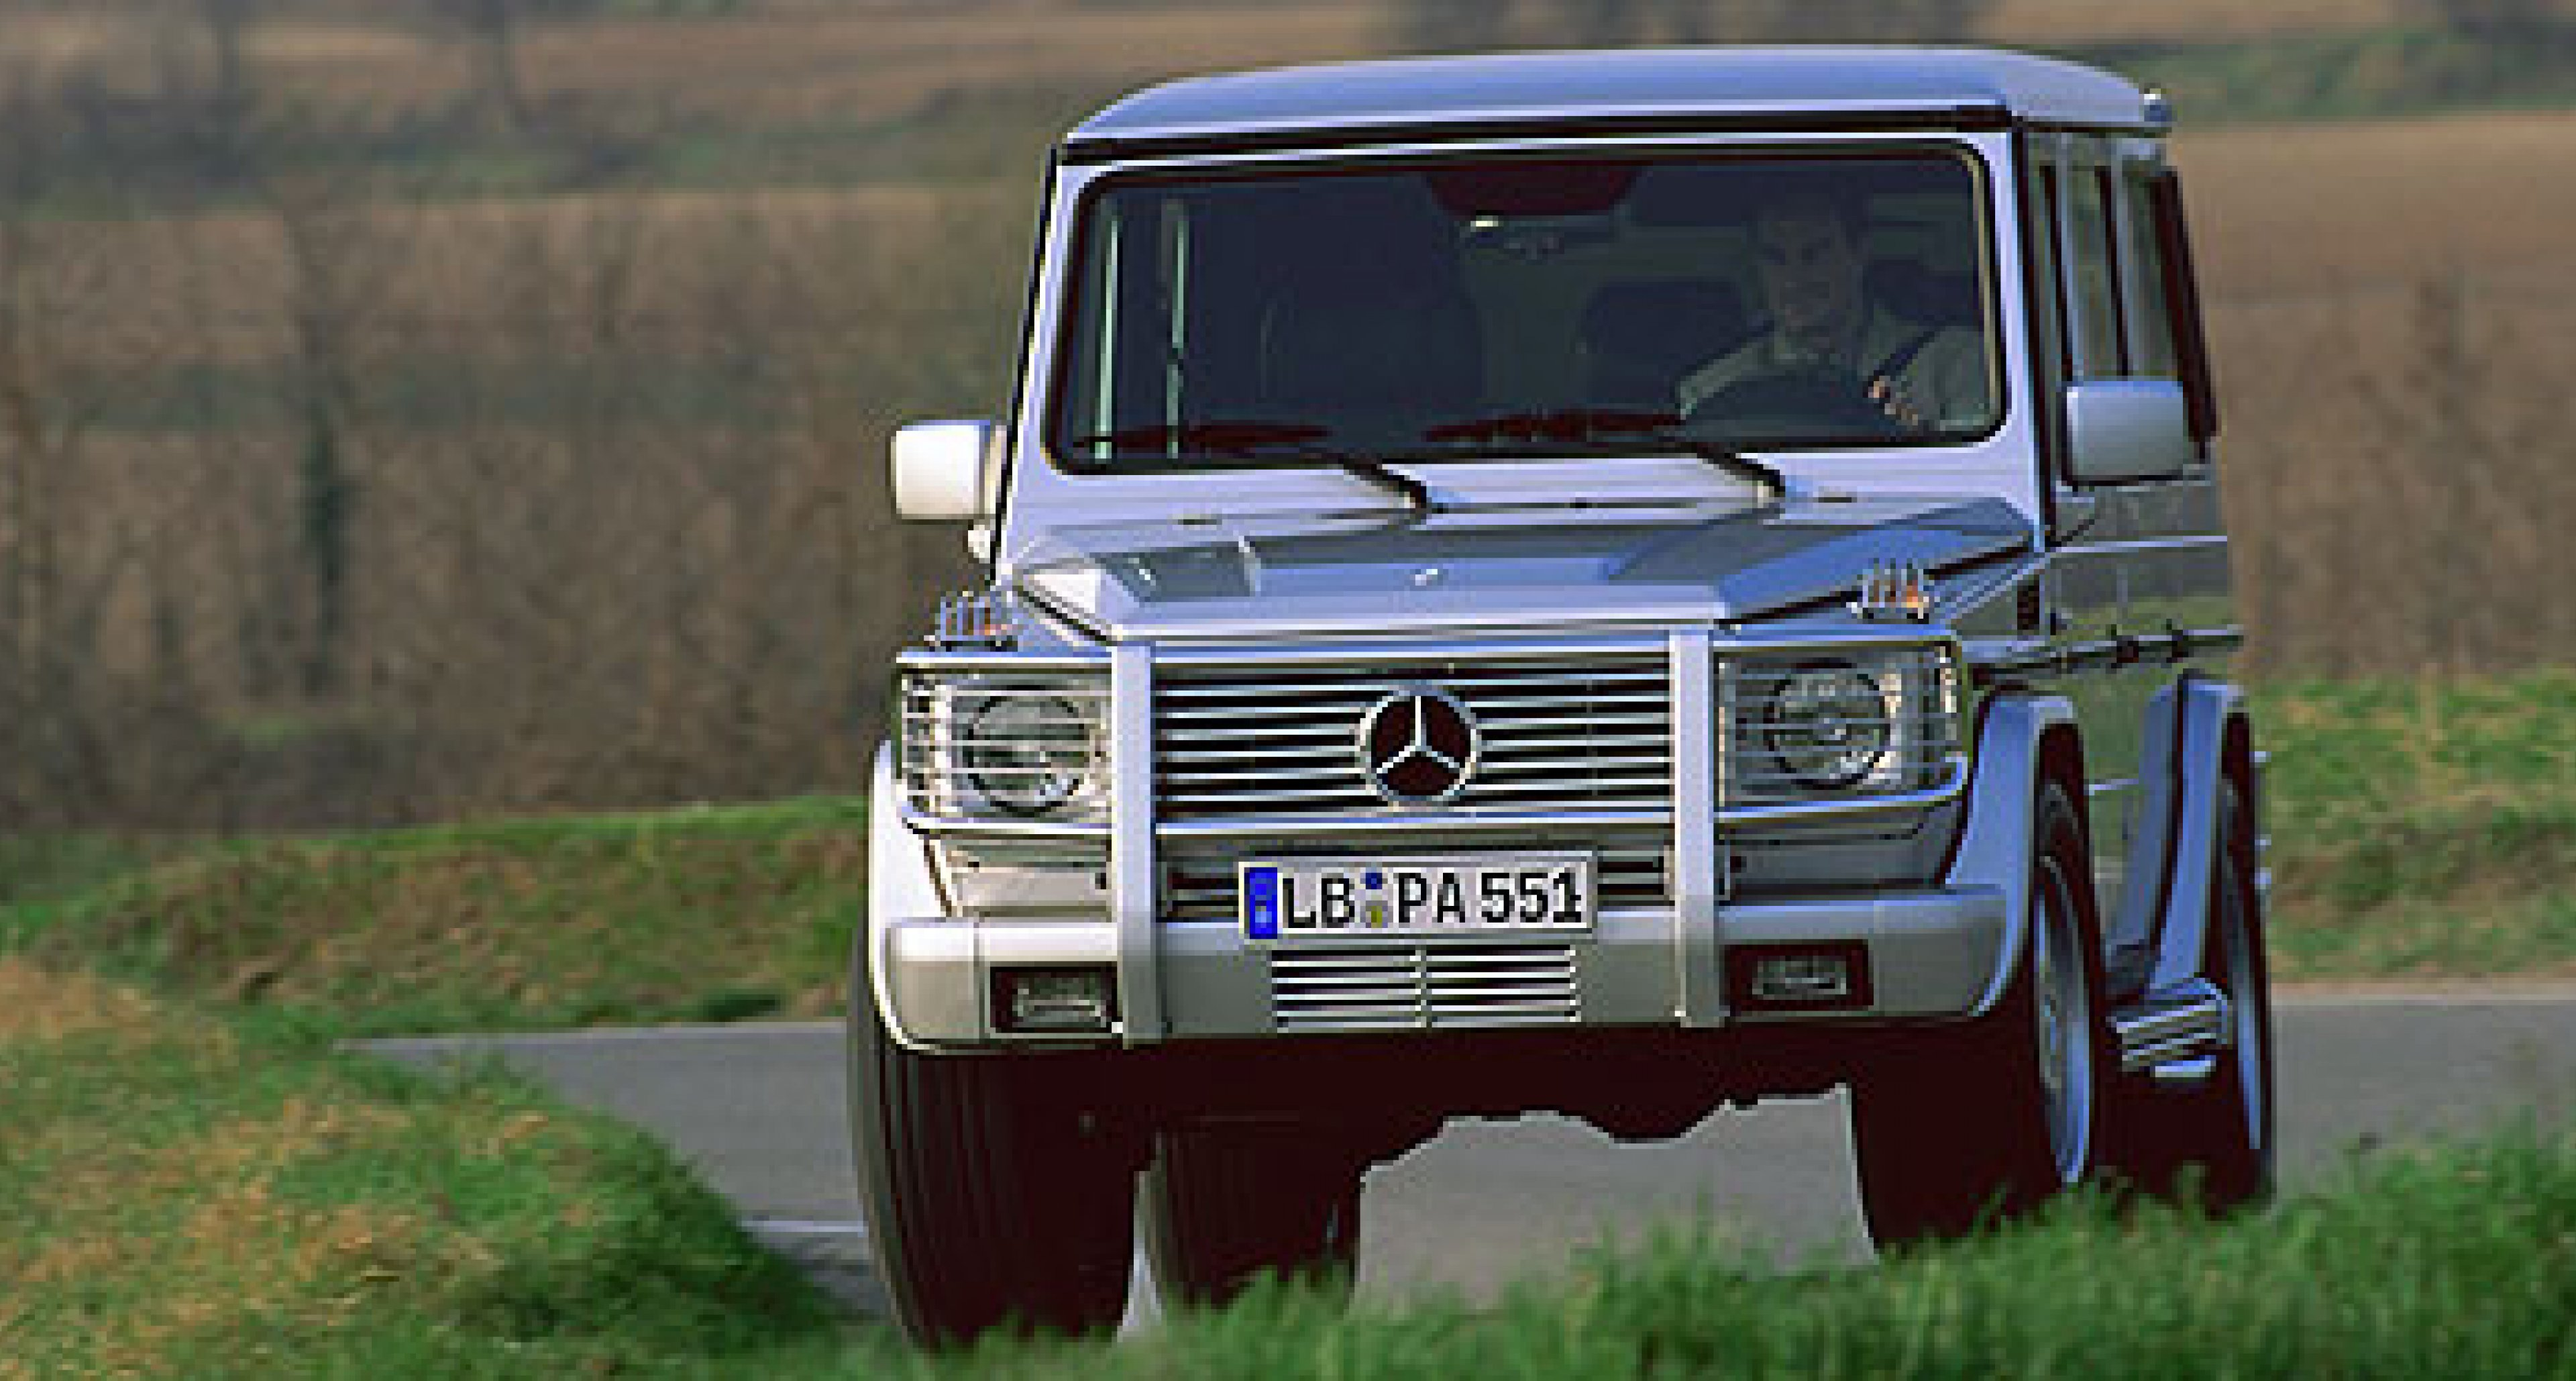 The new Mercedes G 55 AMG with V8 supercharged engine